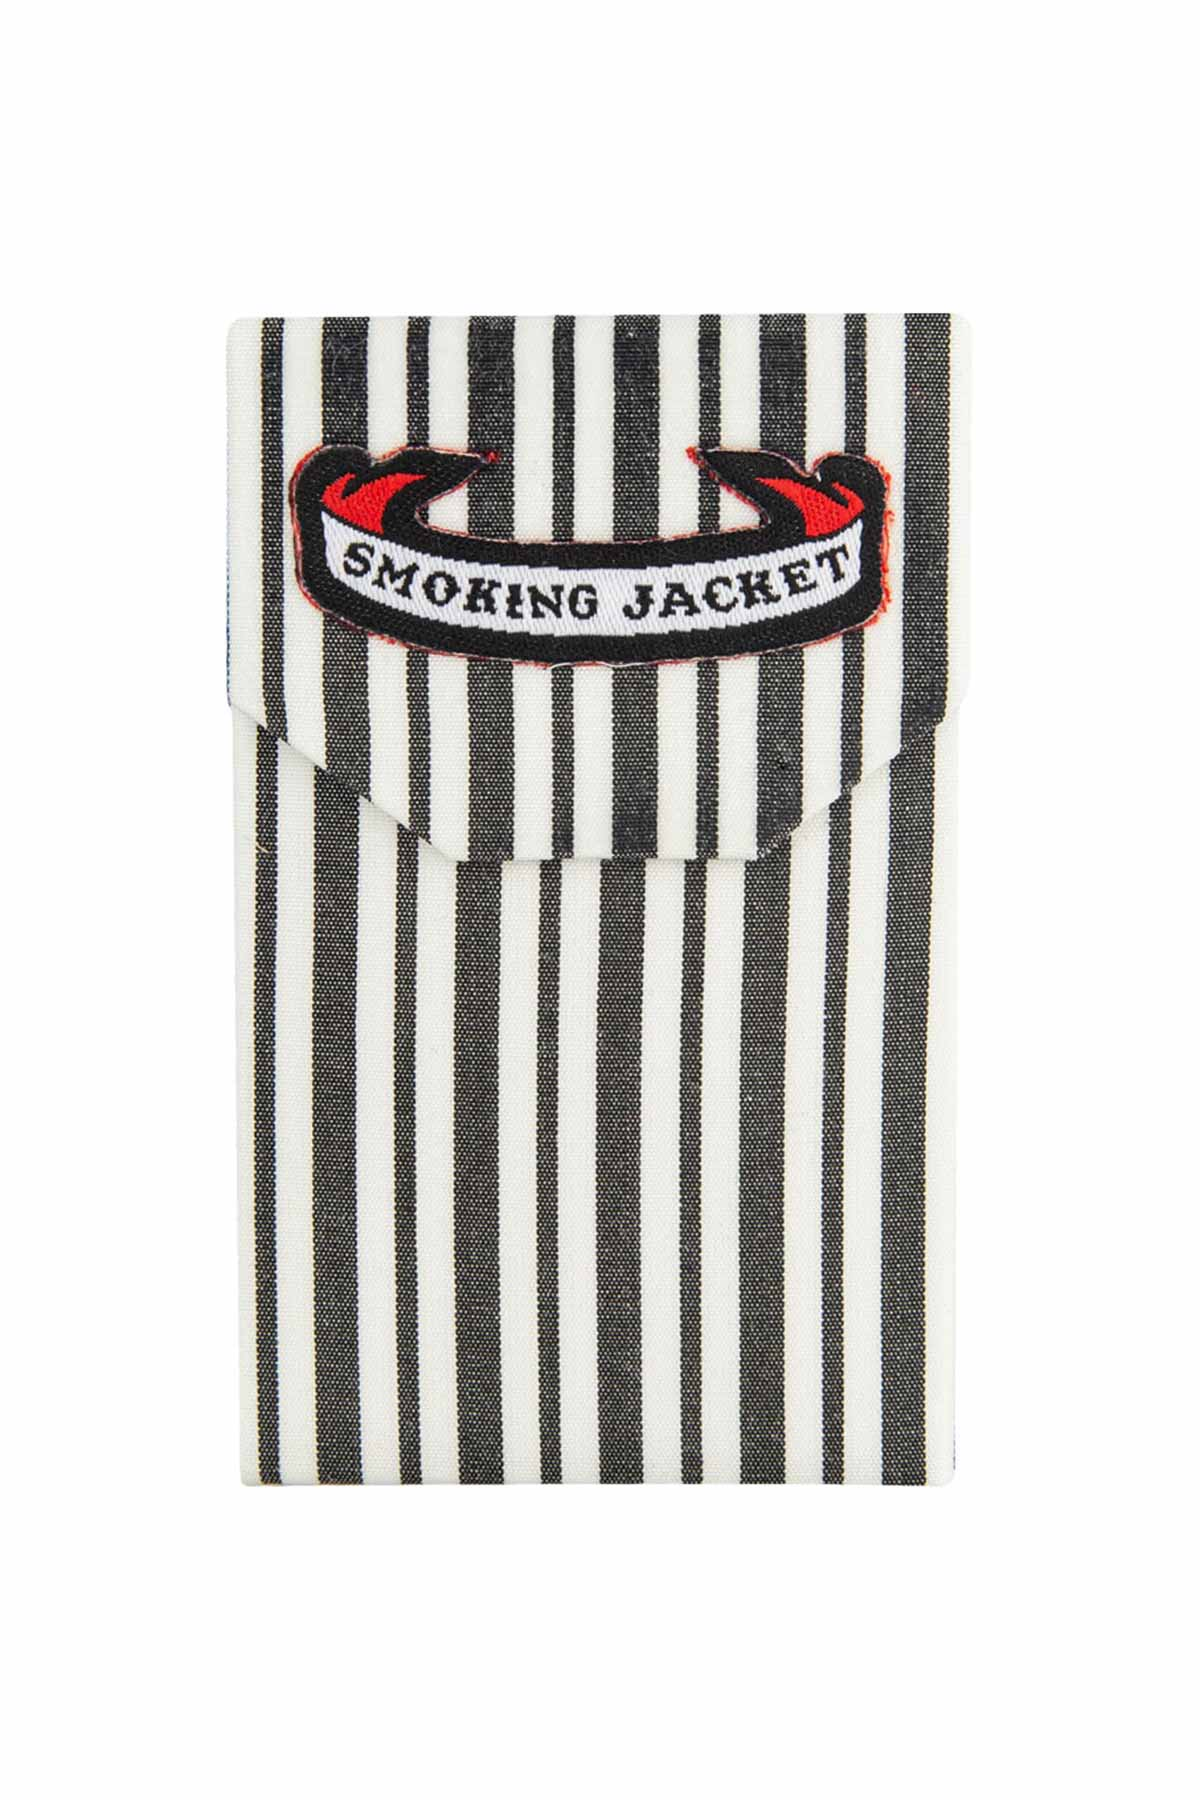 Smoking Jacket - Beardsley Stripe